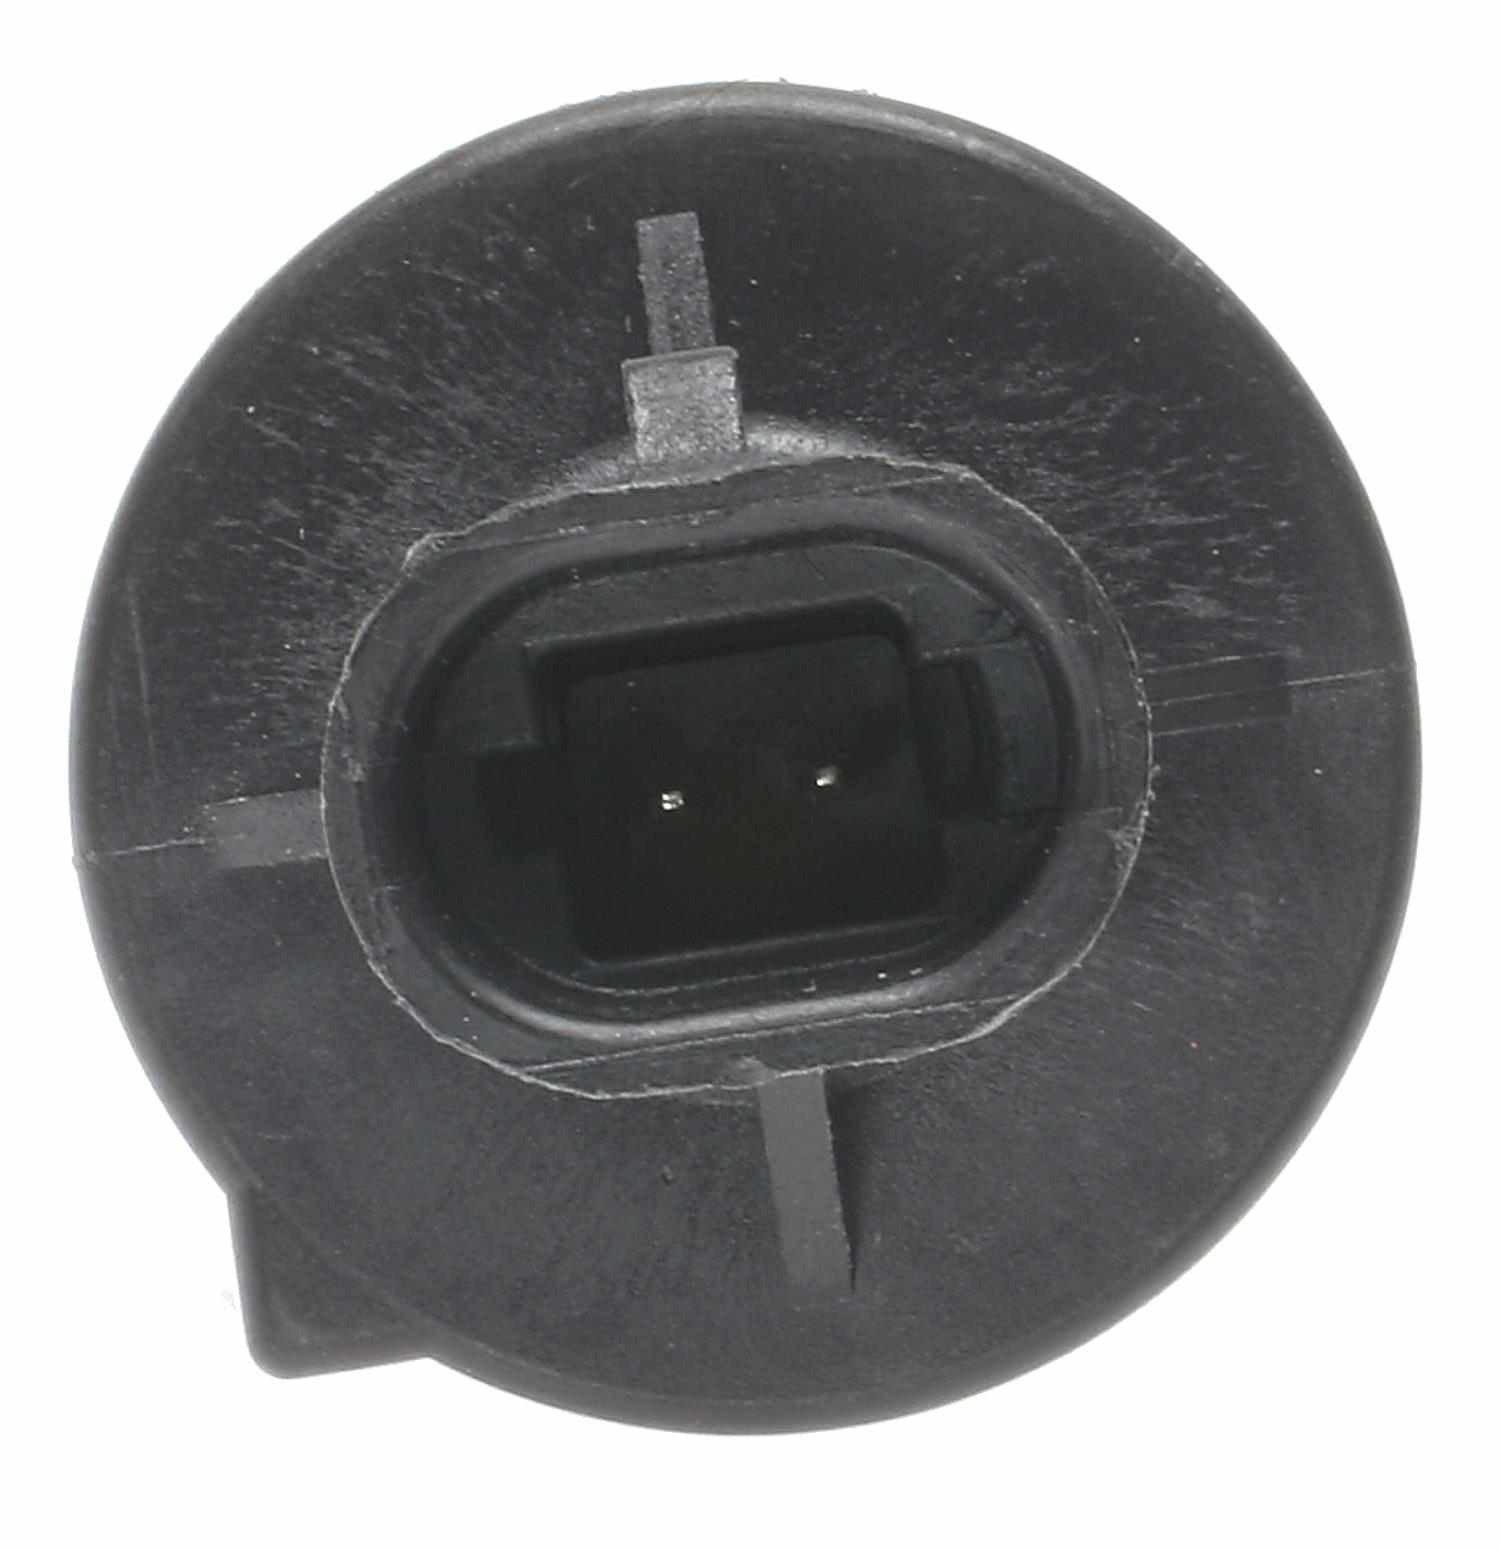 ACDELCO PROFESSIONAL - Air Charge Temperature Sensor - DCC 213-4439